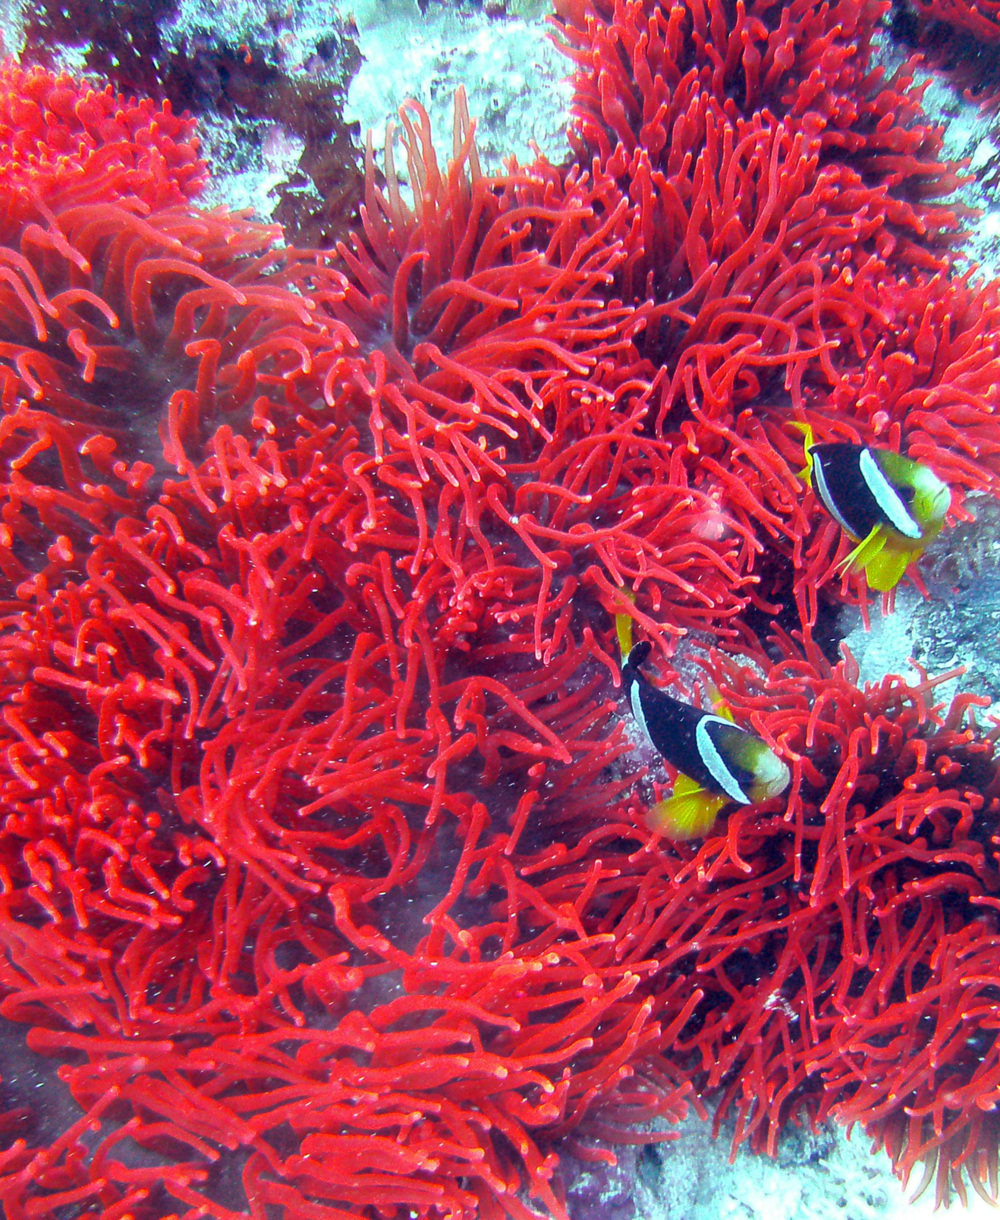 Red Sea Anemone, clown fish, Maldives.